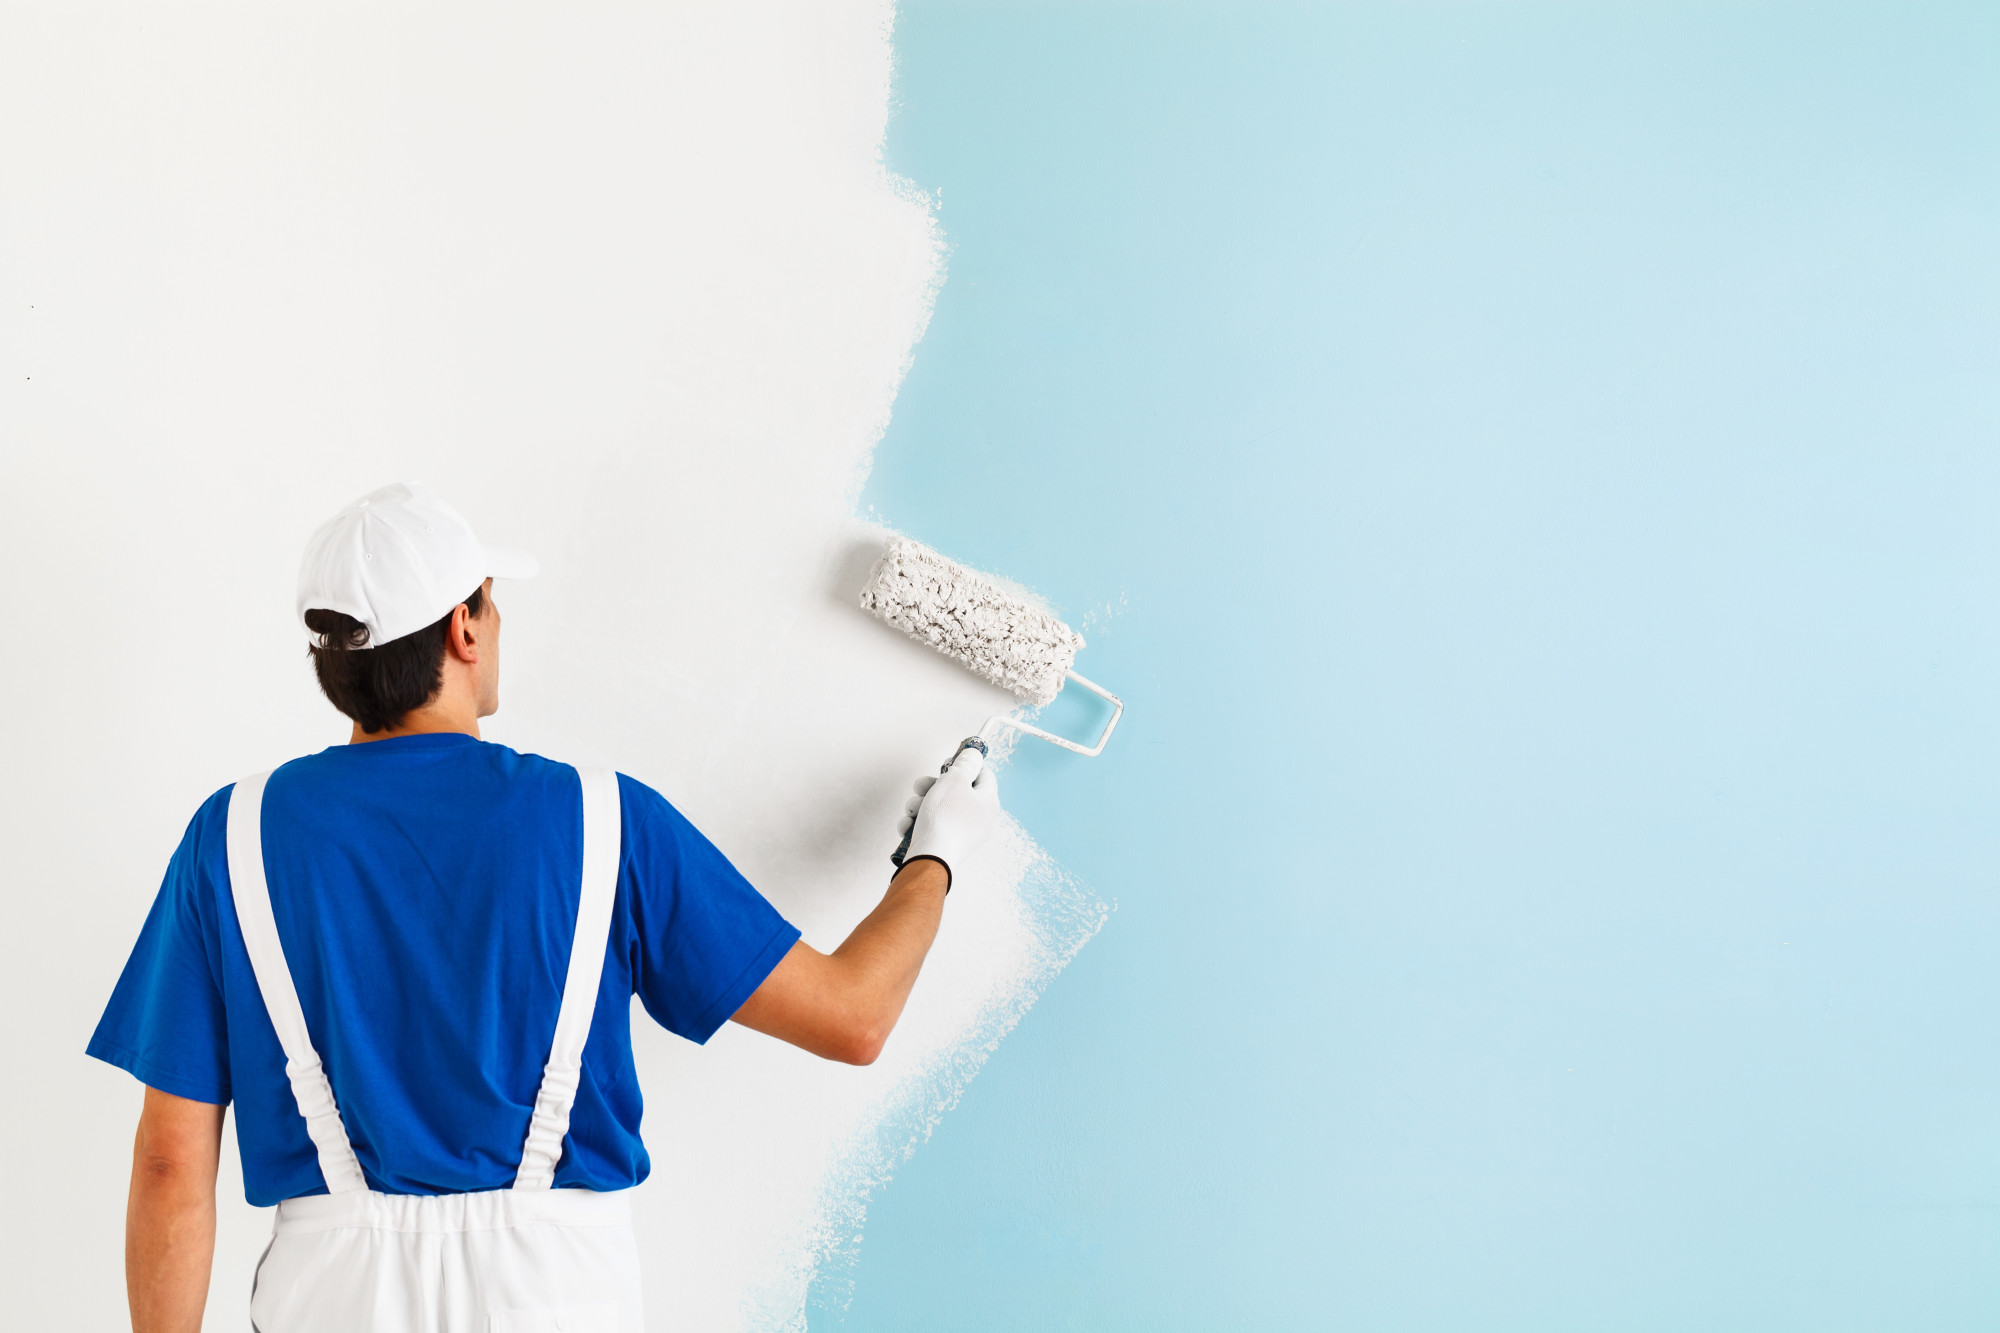 9 Questions to Ask Before Hiring a Residential Painter